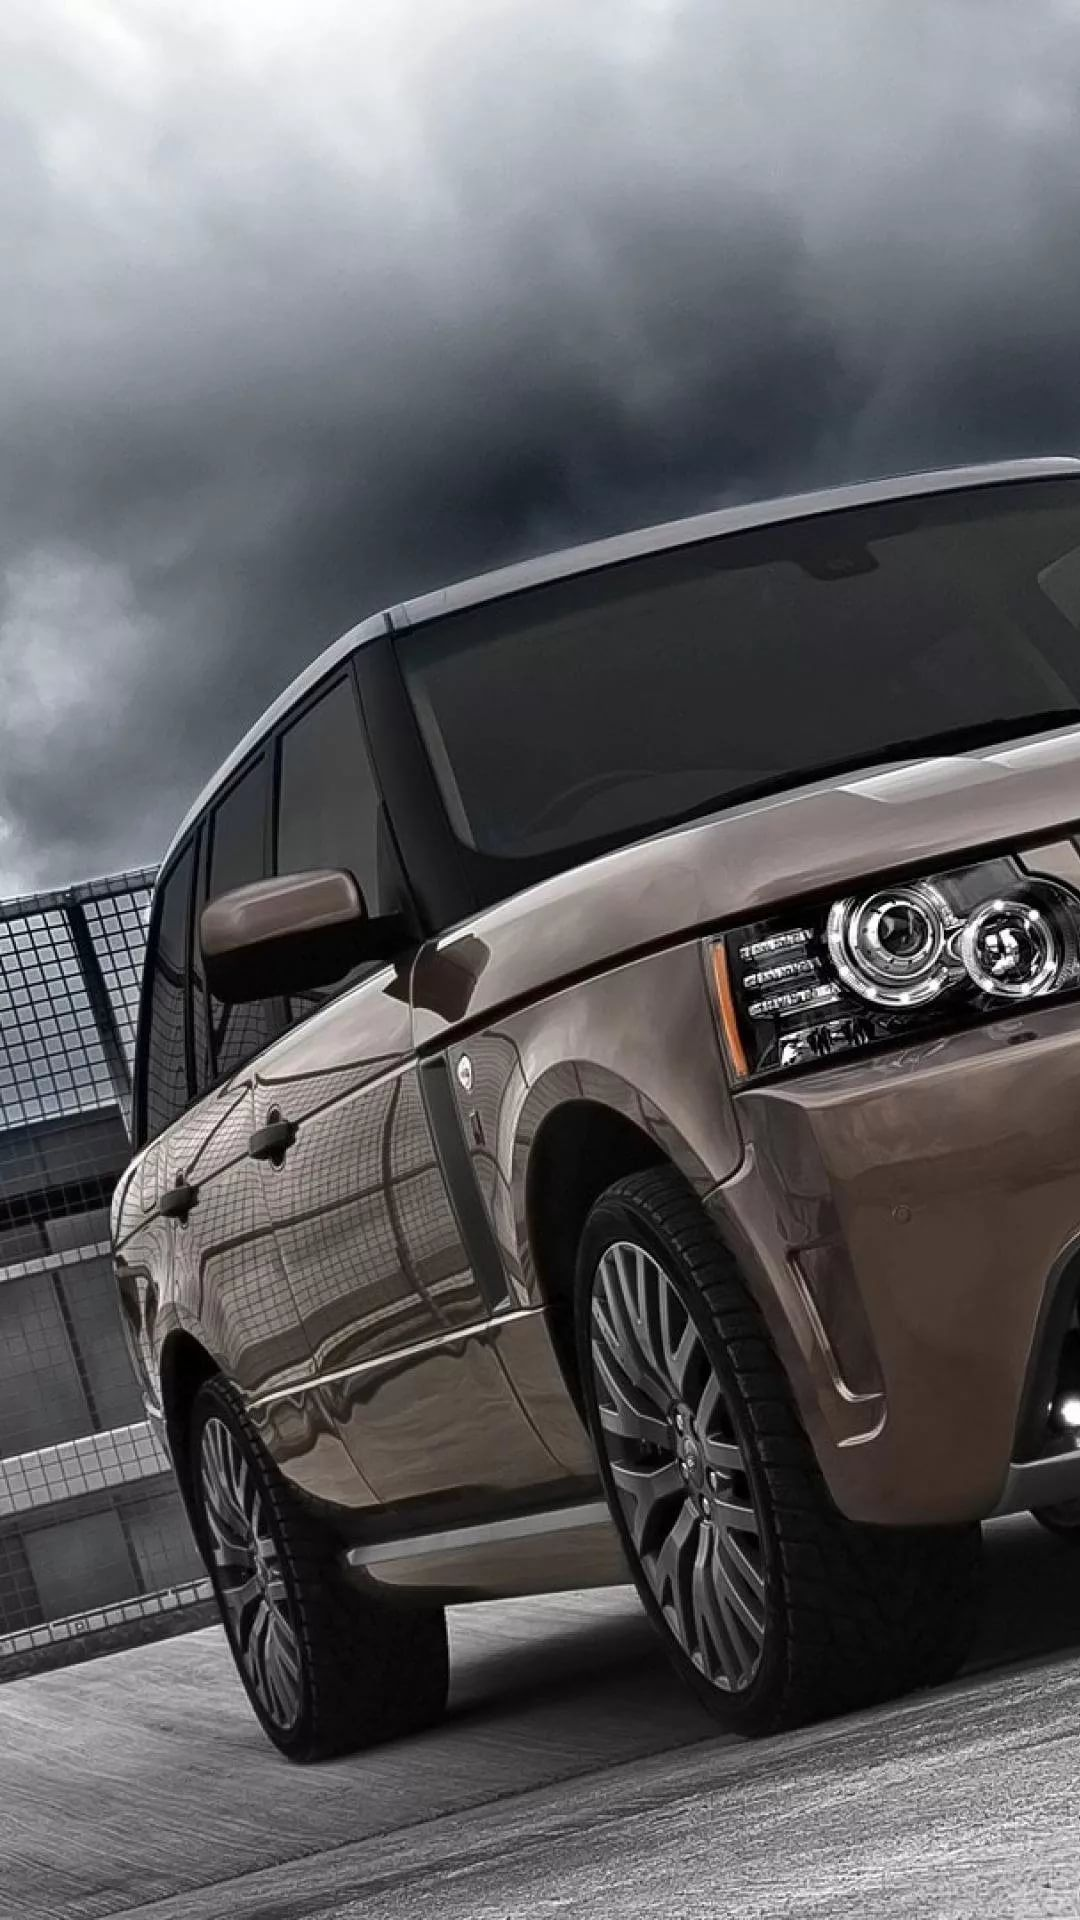 Range Rover iPhone 7 plus wallpaper